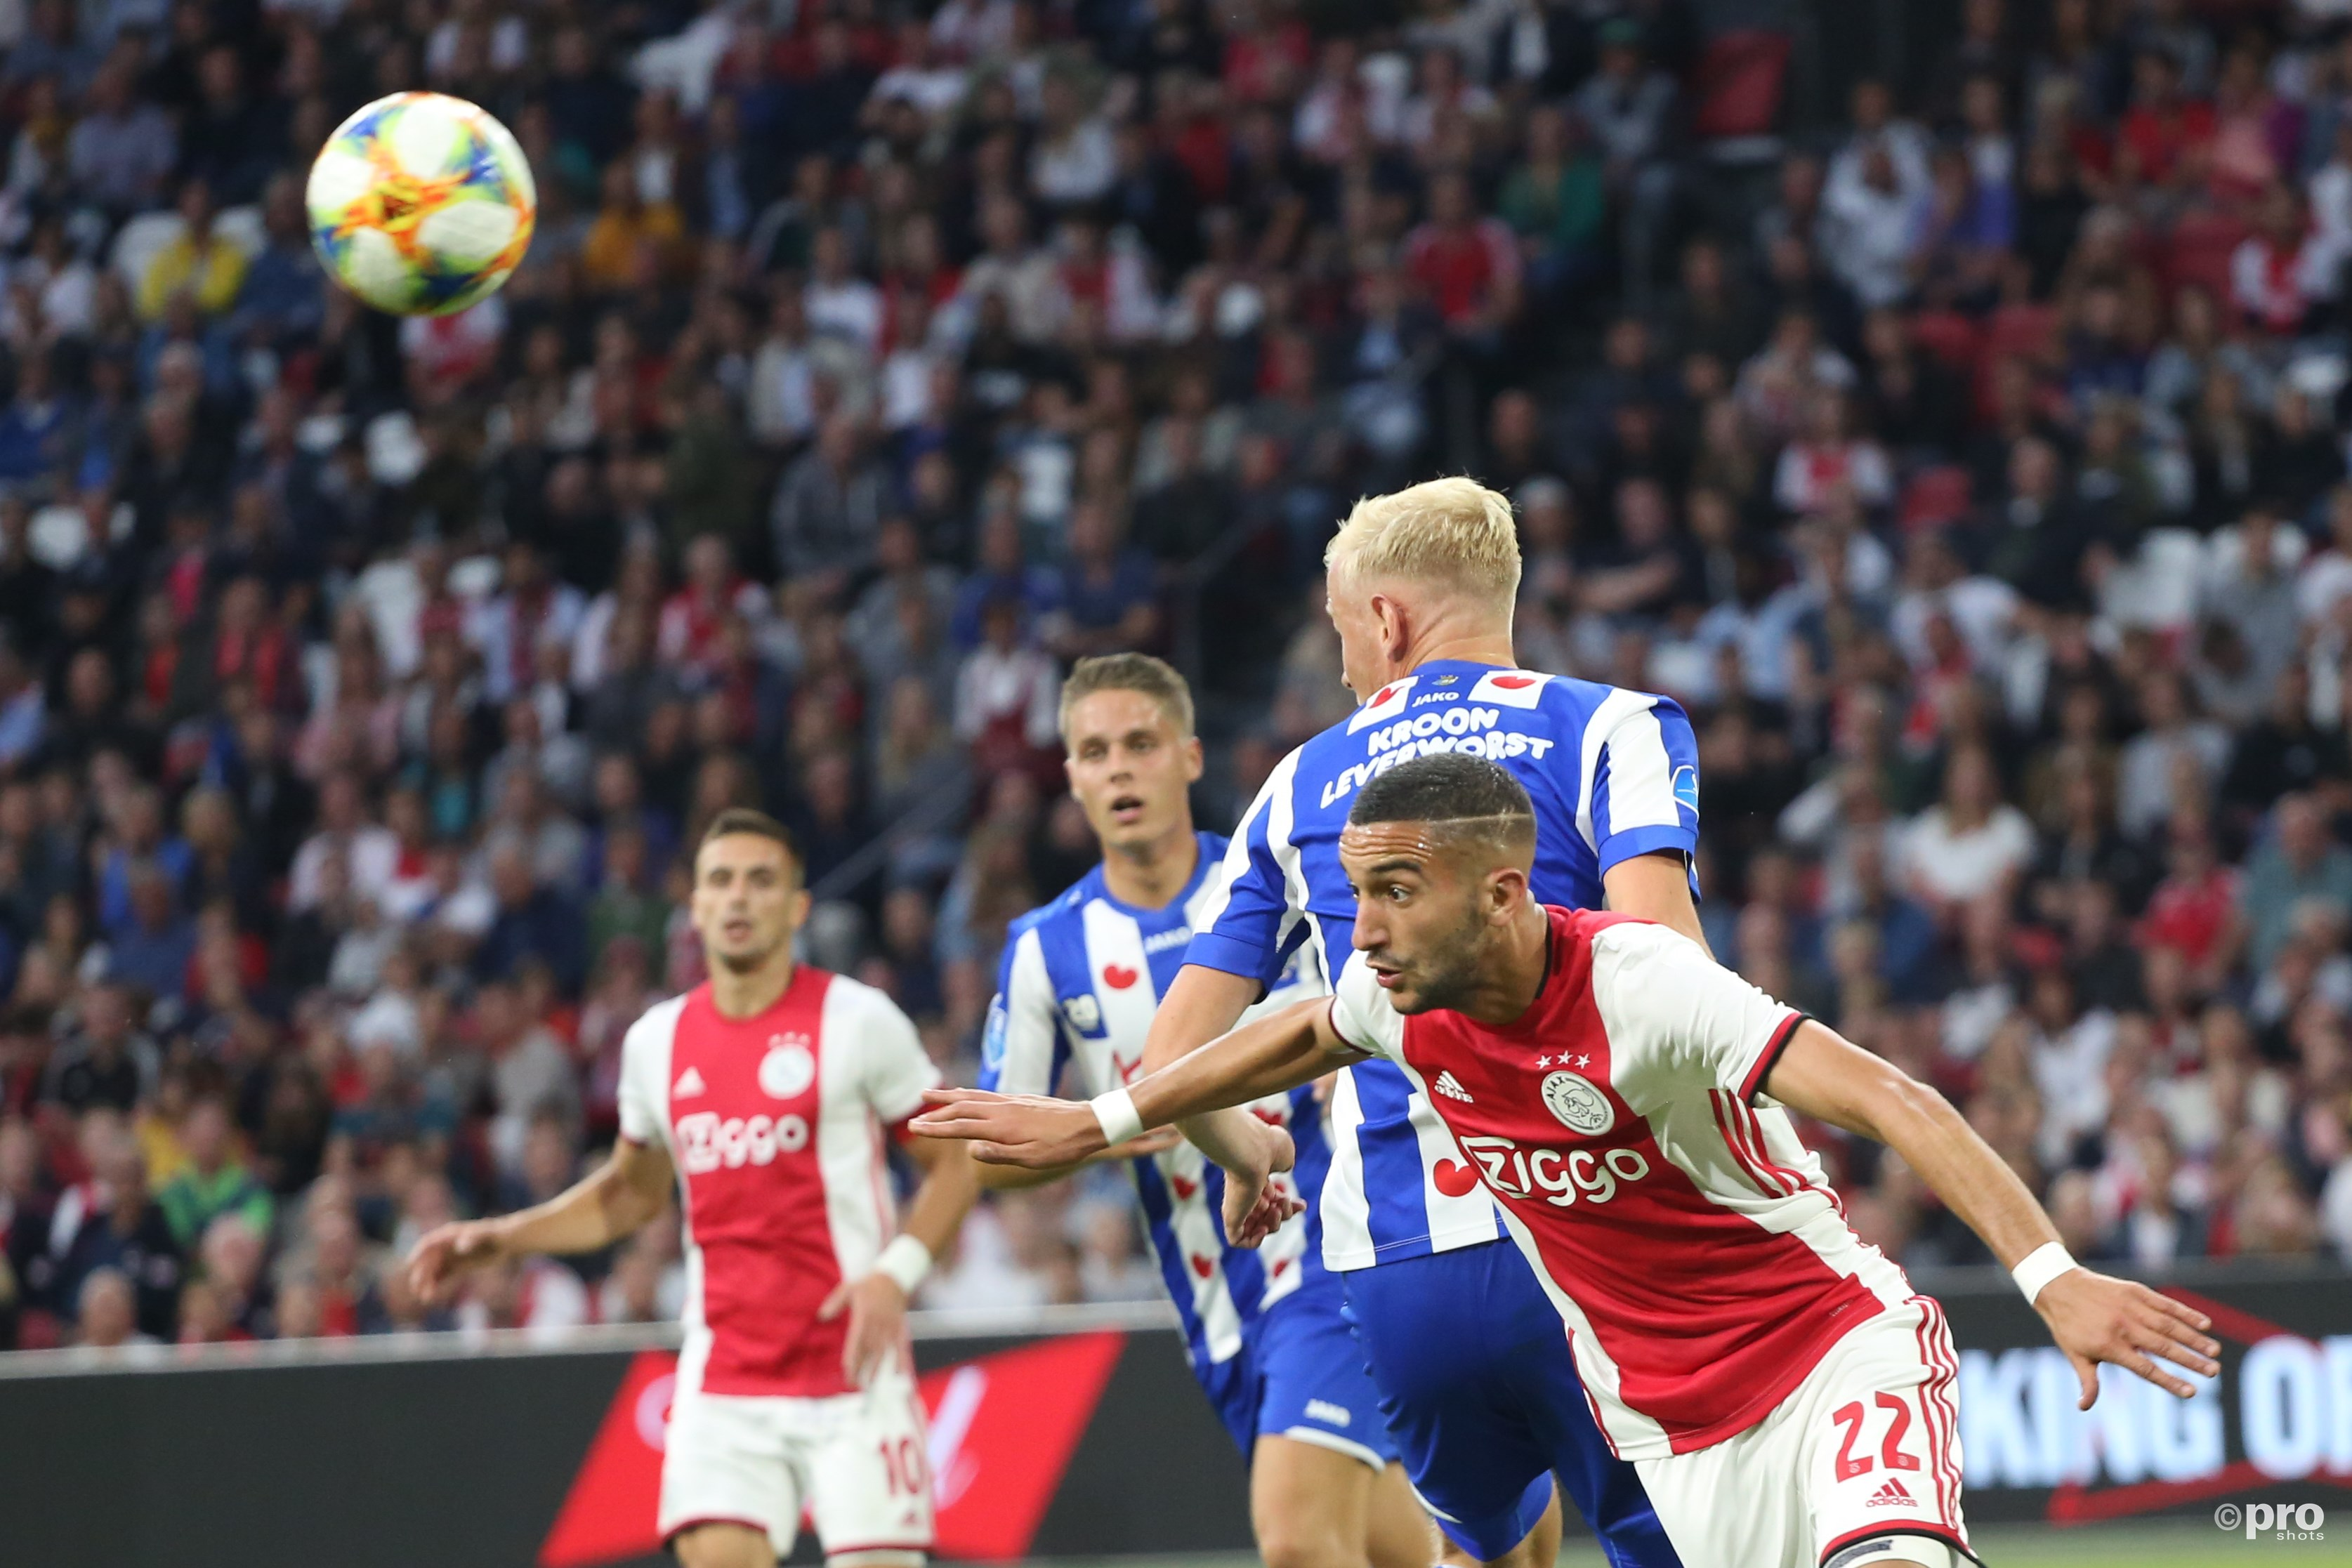 Ajax - Heerenveen. (PRO SHOTS/Zuma Press)